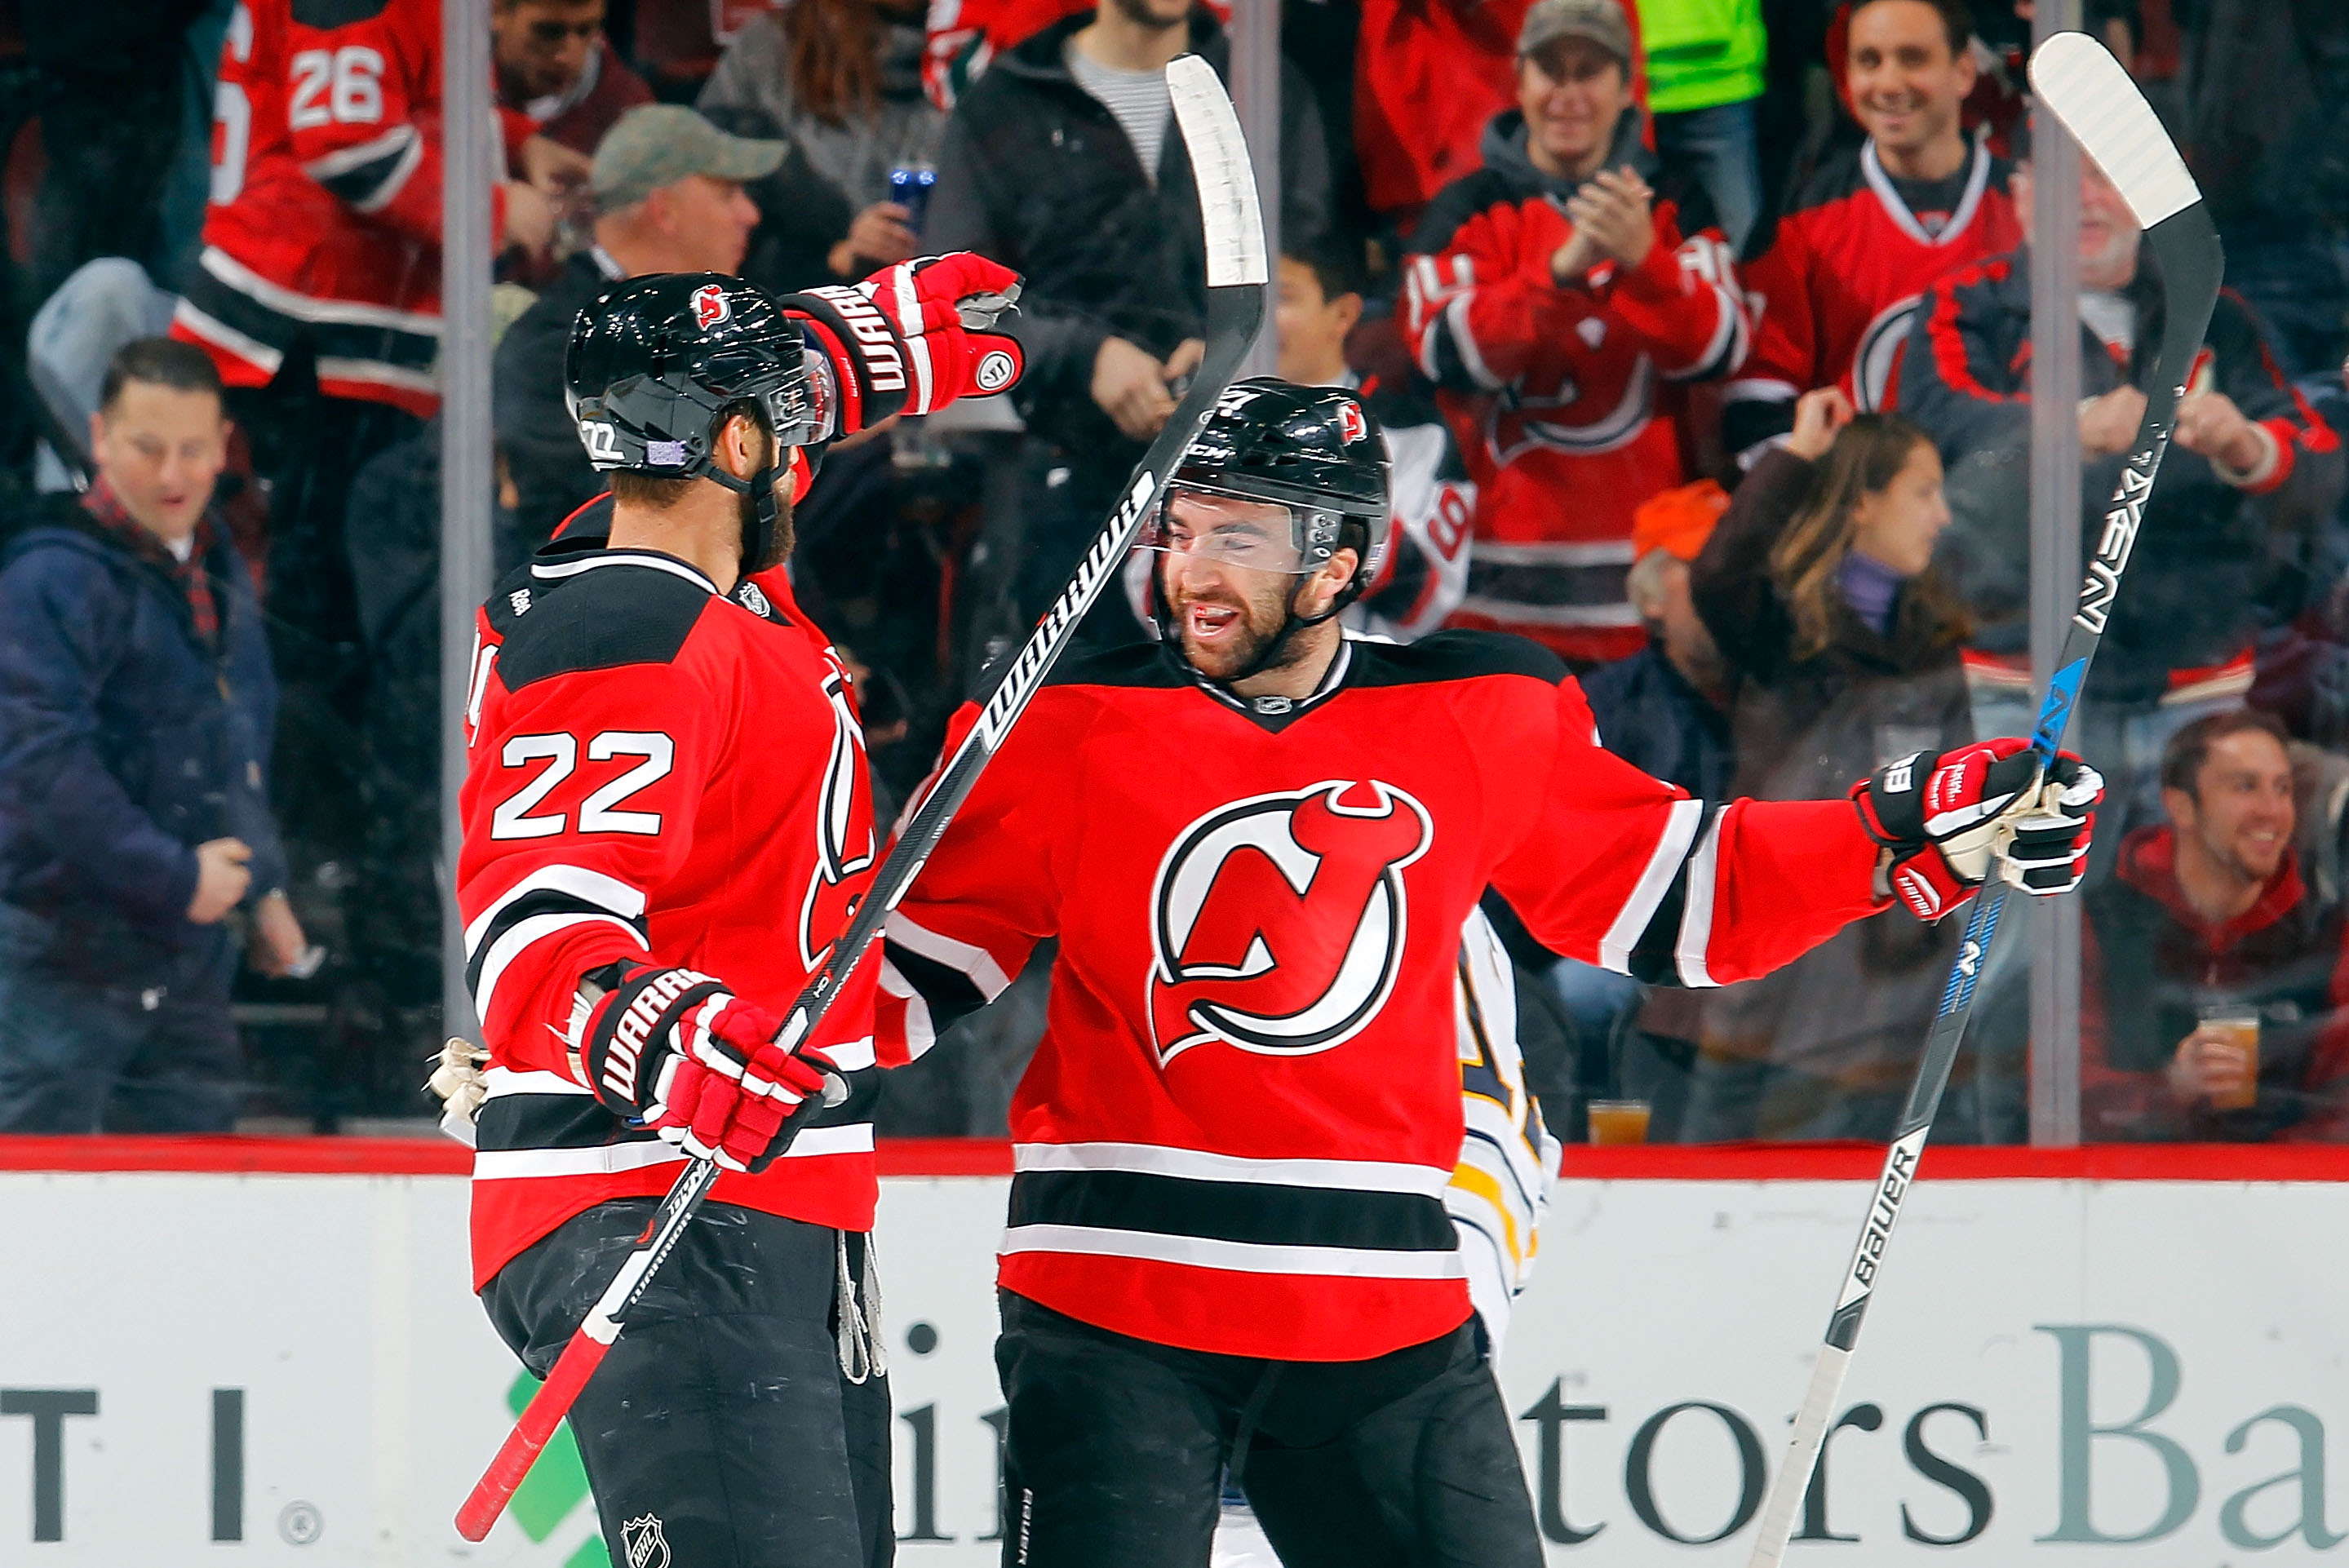 Kyle Quincey (22) and Kyle Palmieri both scored for the Devils against the Sabres.  (Getty Images)